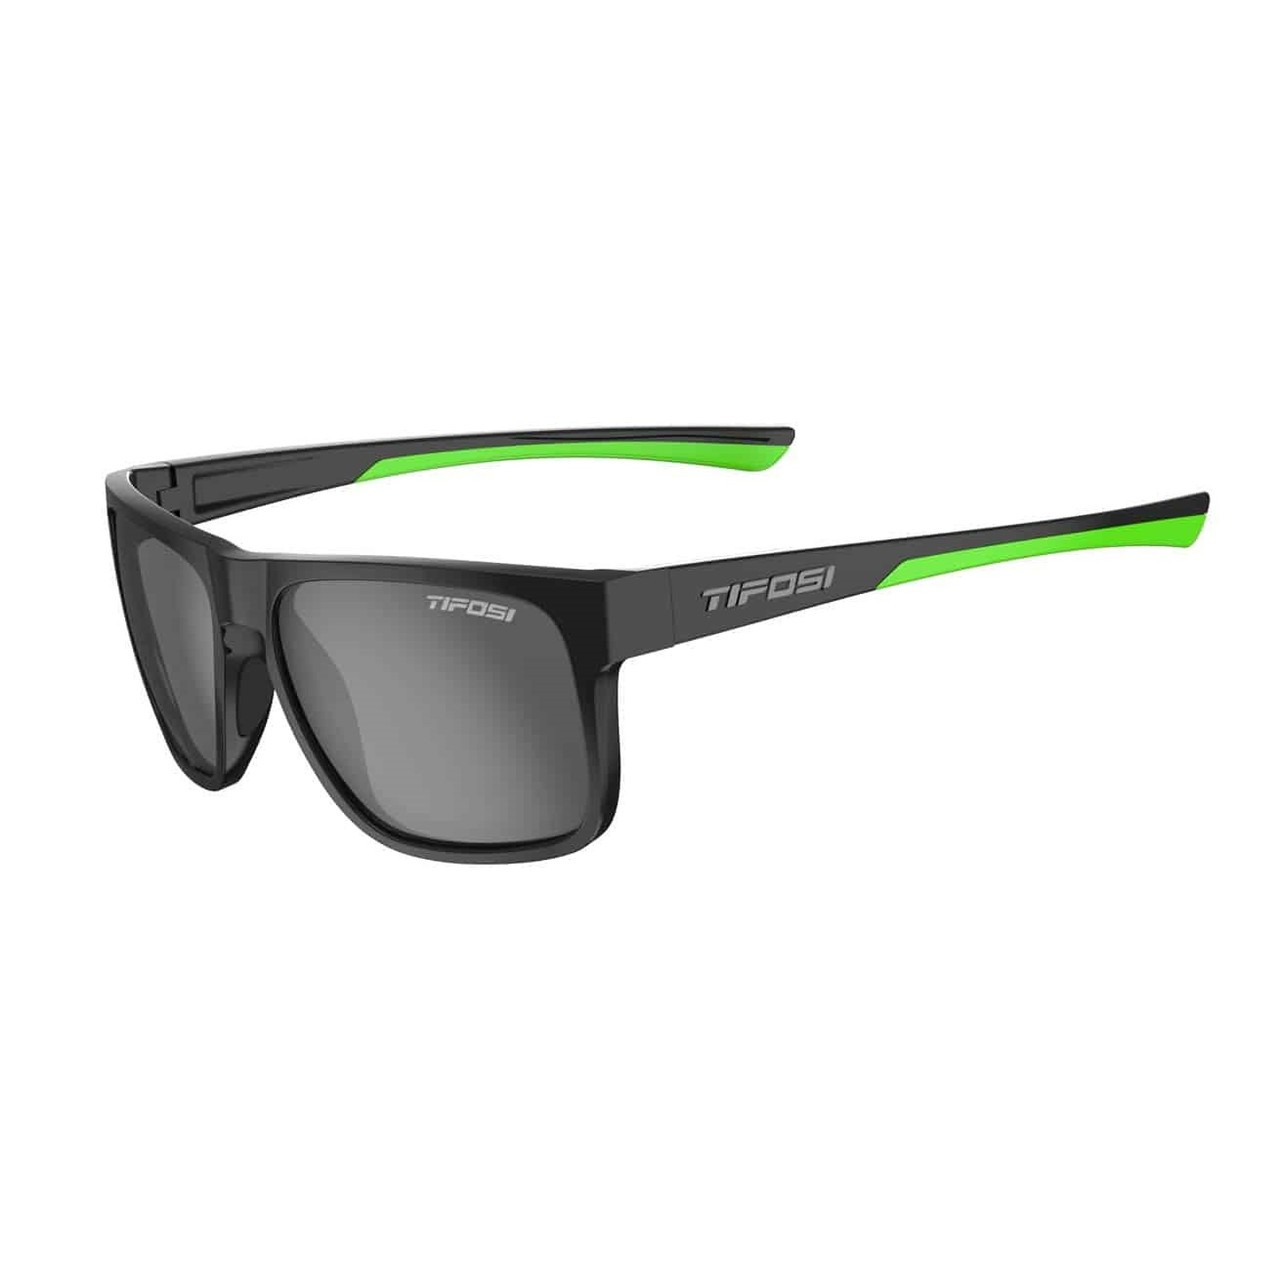 Tifosi Optics Swick Sunglasses with Polarized Lens - 2019 price